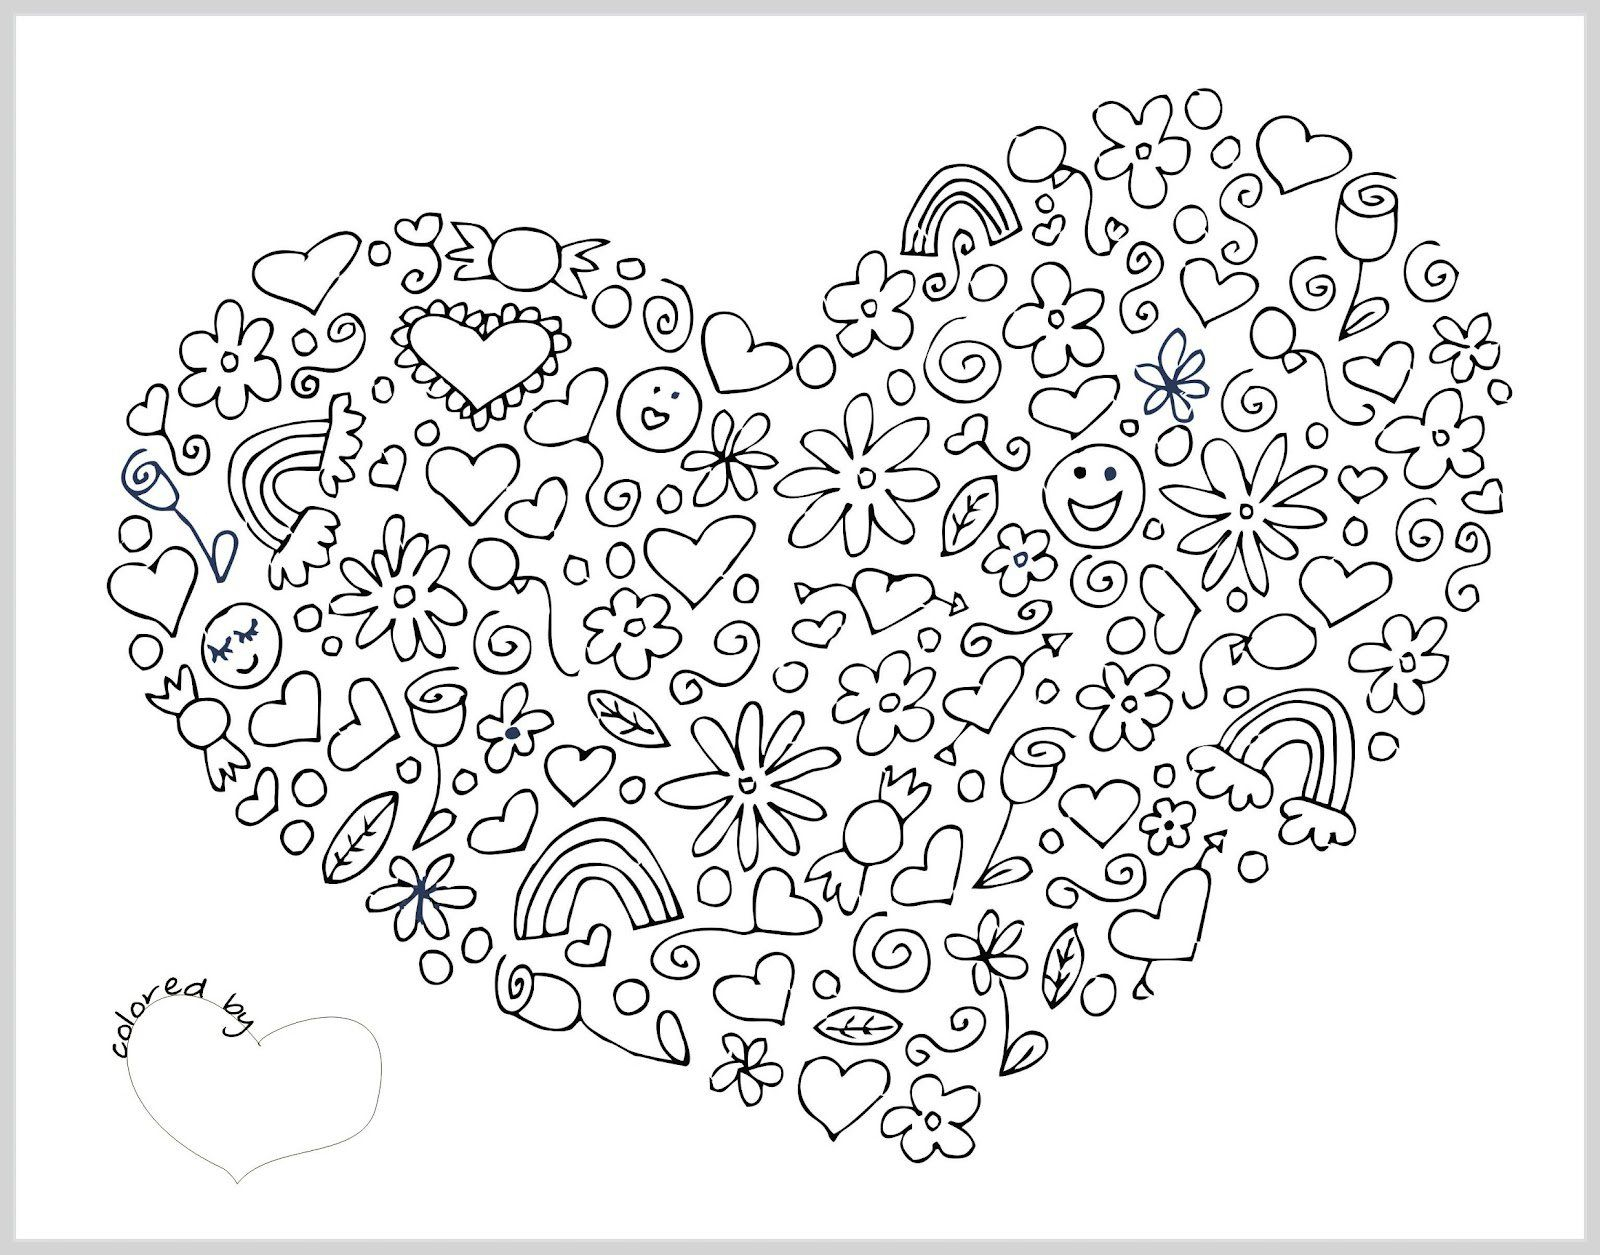 Valentines Day Coloring Pages For Adults Valentines Day Mandala Coloring Pages With Pin Rhonda Floyd On